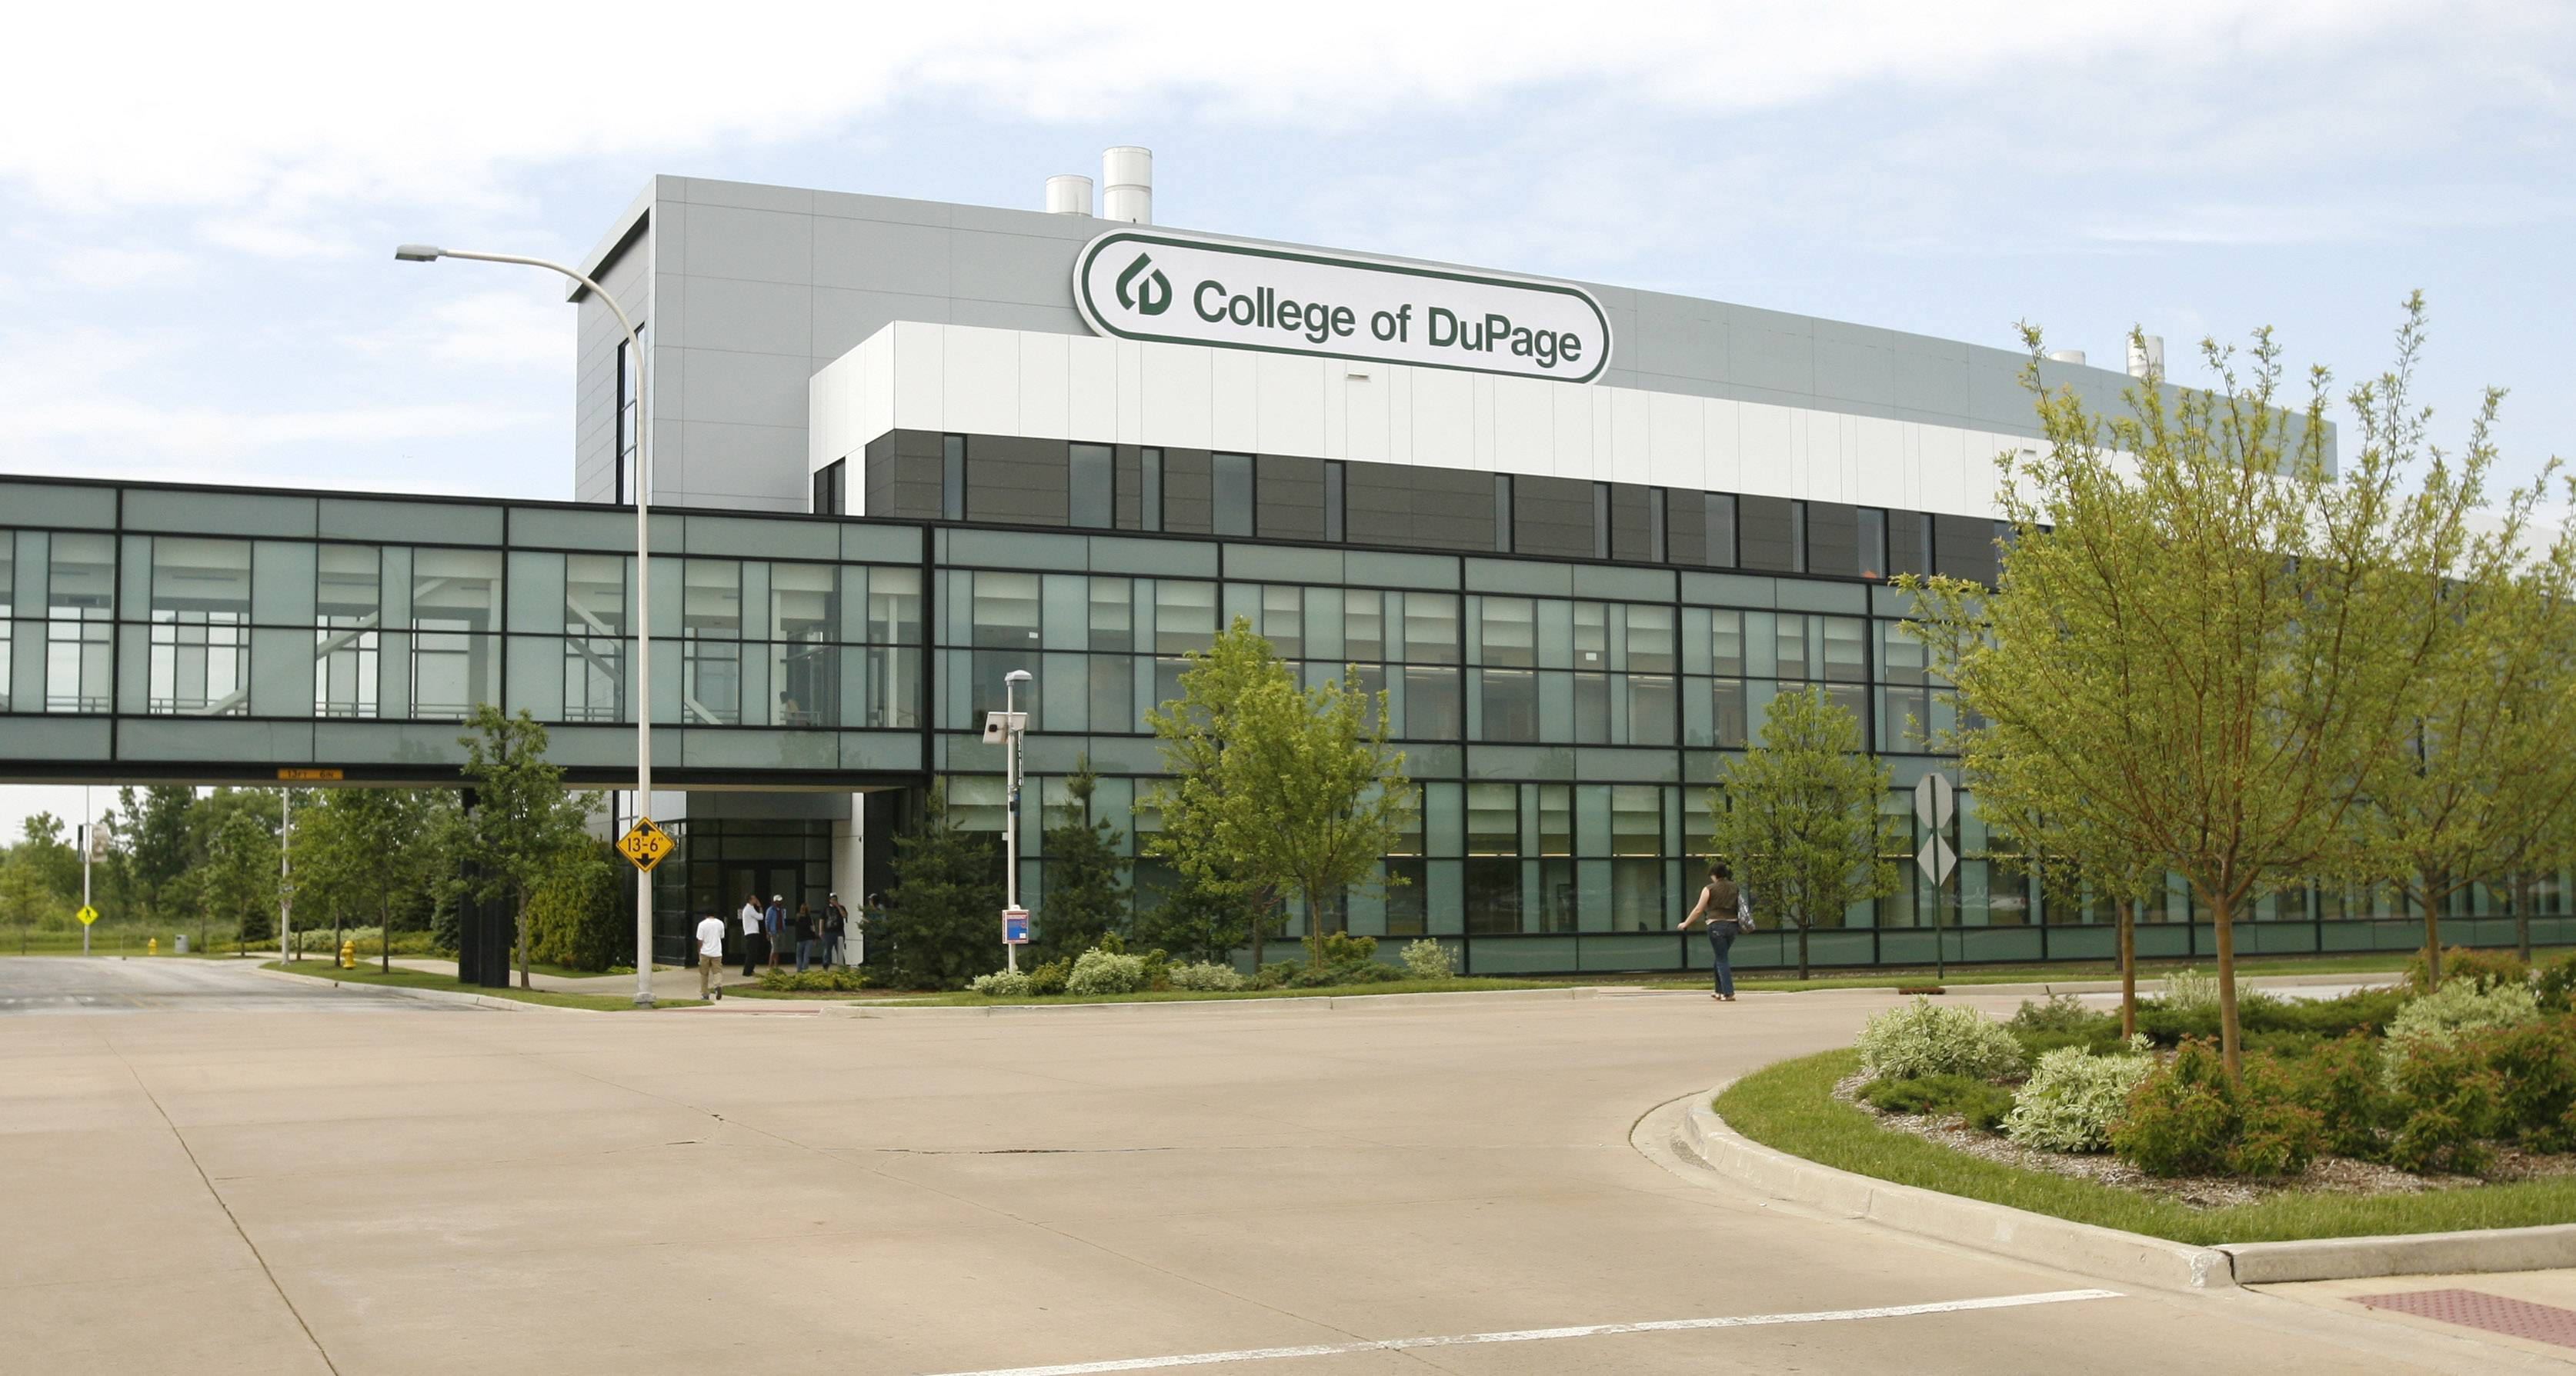 Suburban community college foundations' scholarship amounts well below national average